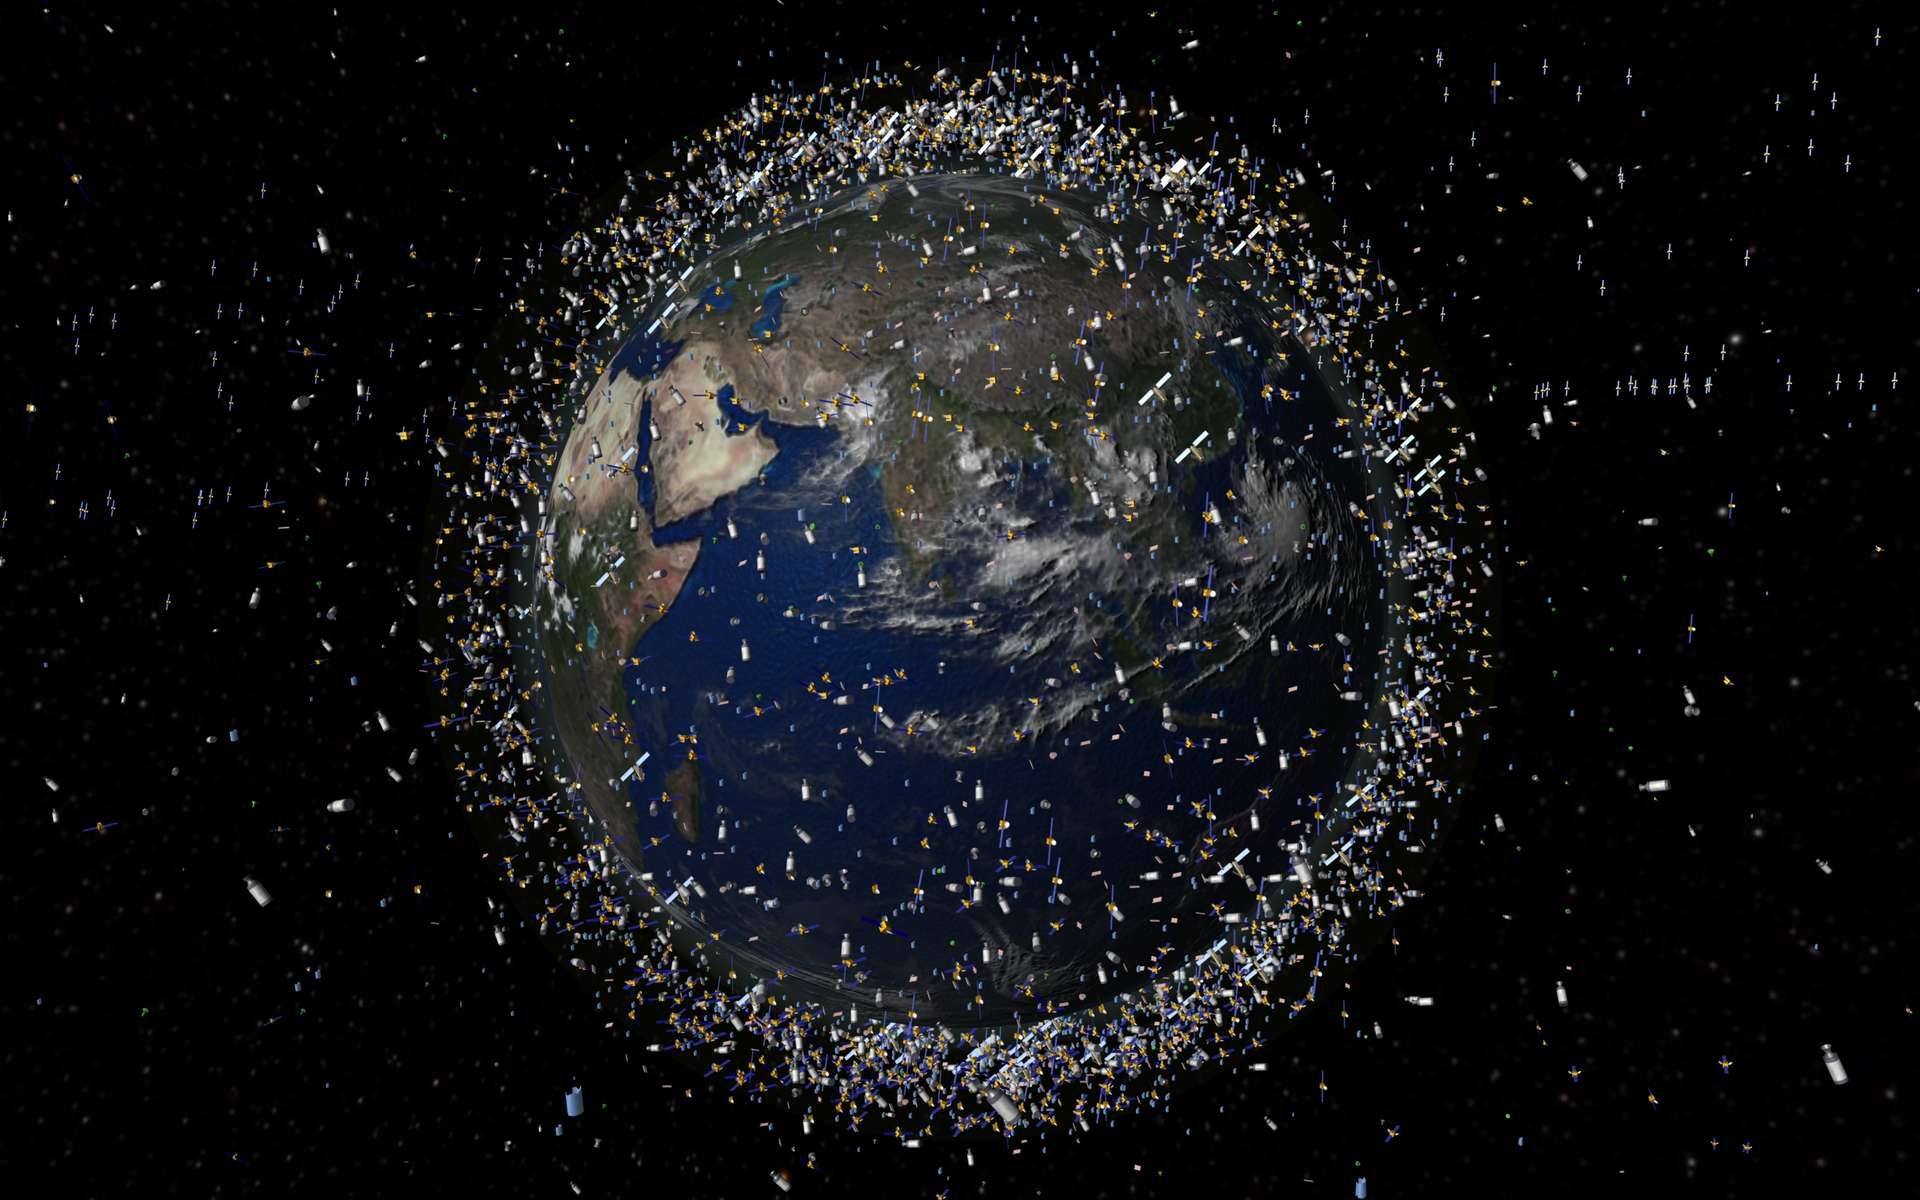 https://cdn.futura-sciences.com/buildsv6/images/wide1920/6/0/c/60ce7059e9_98995_space-debris-2-leo.jpg